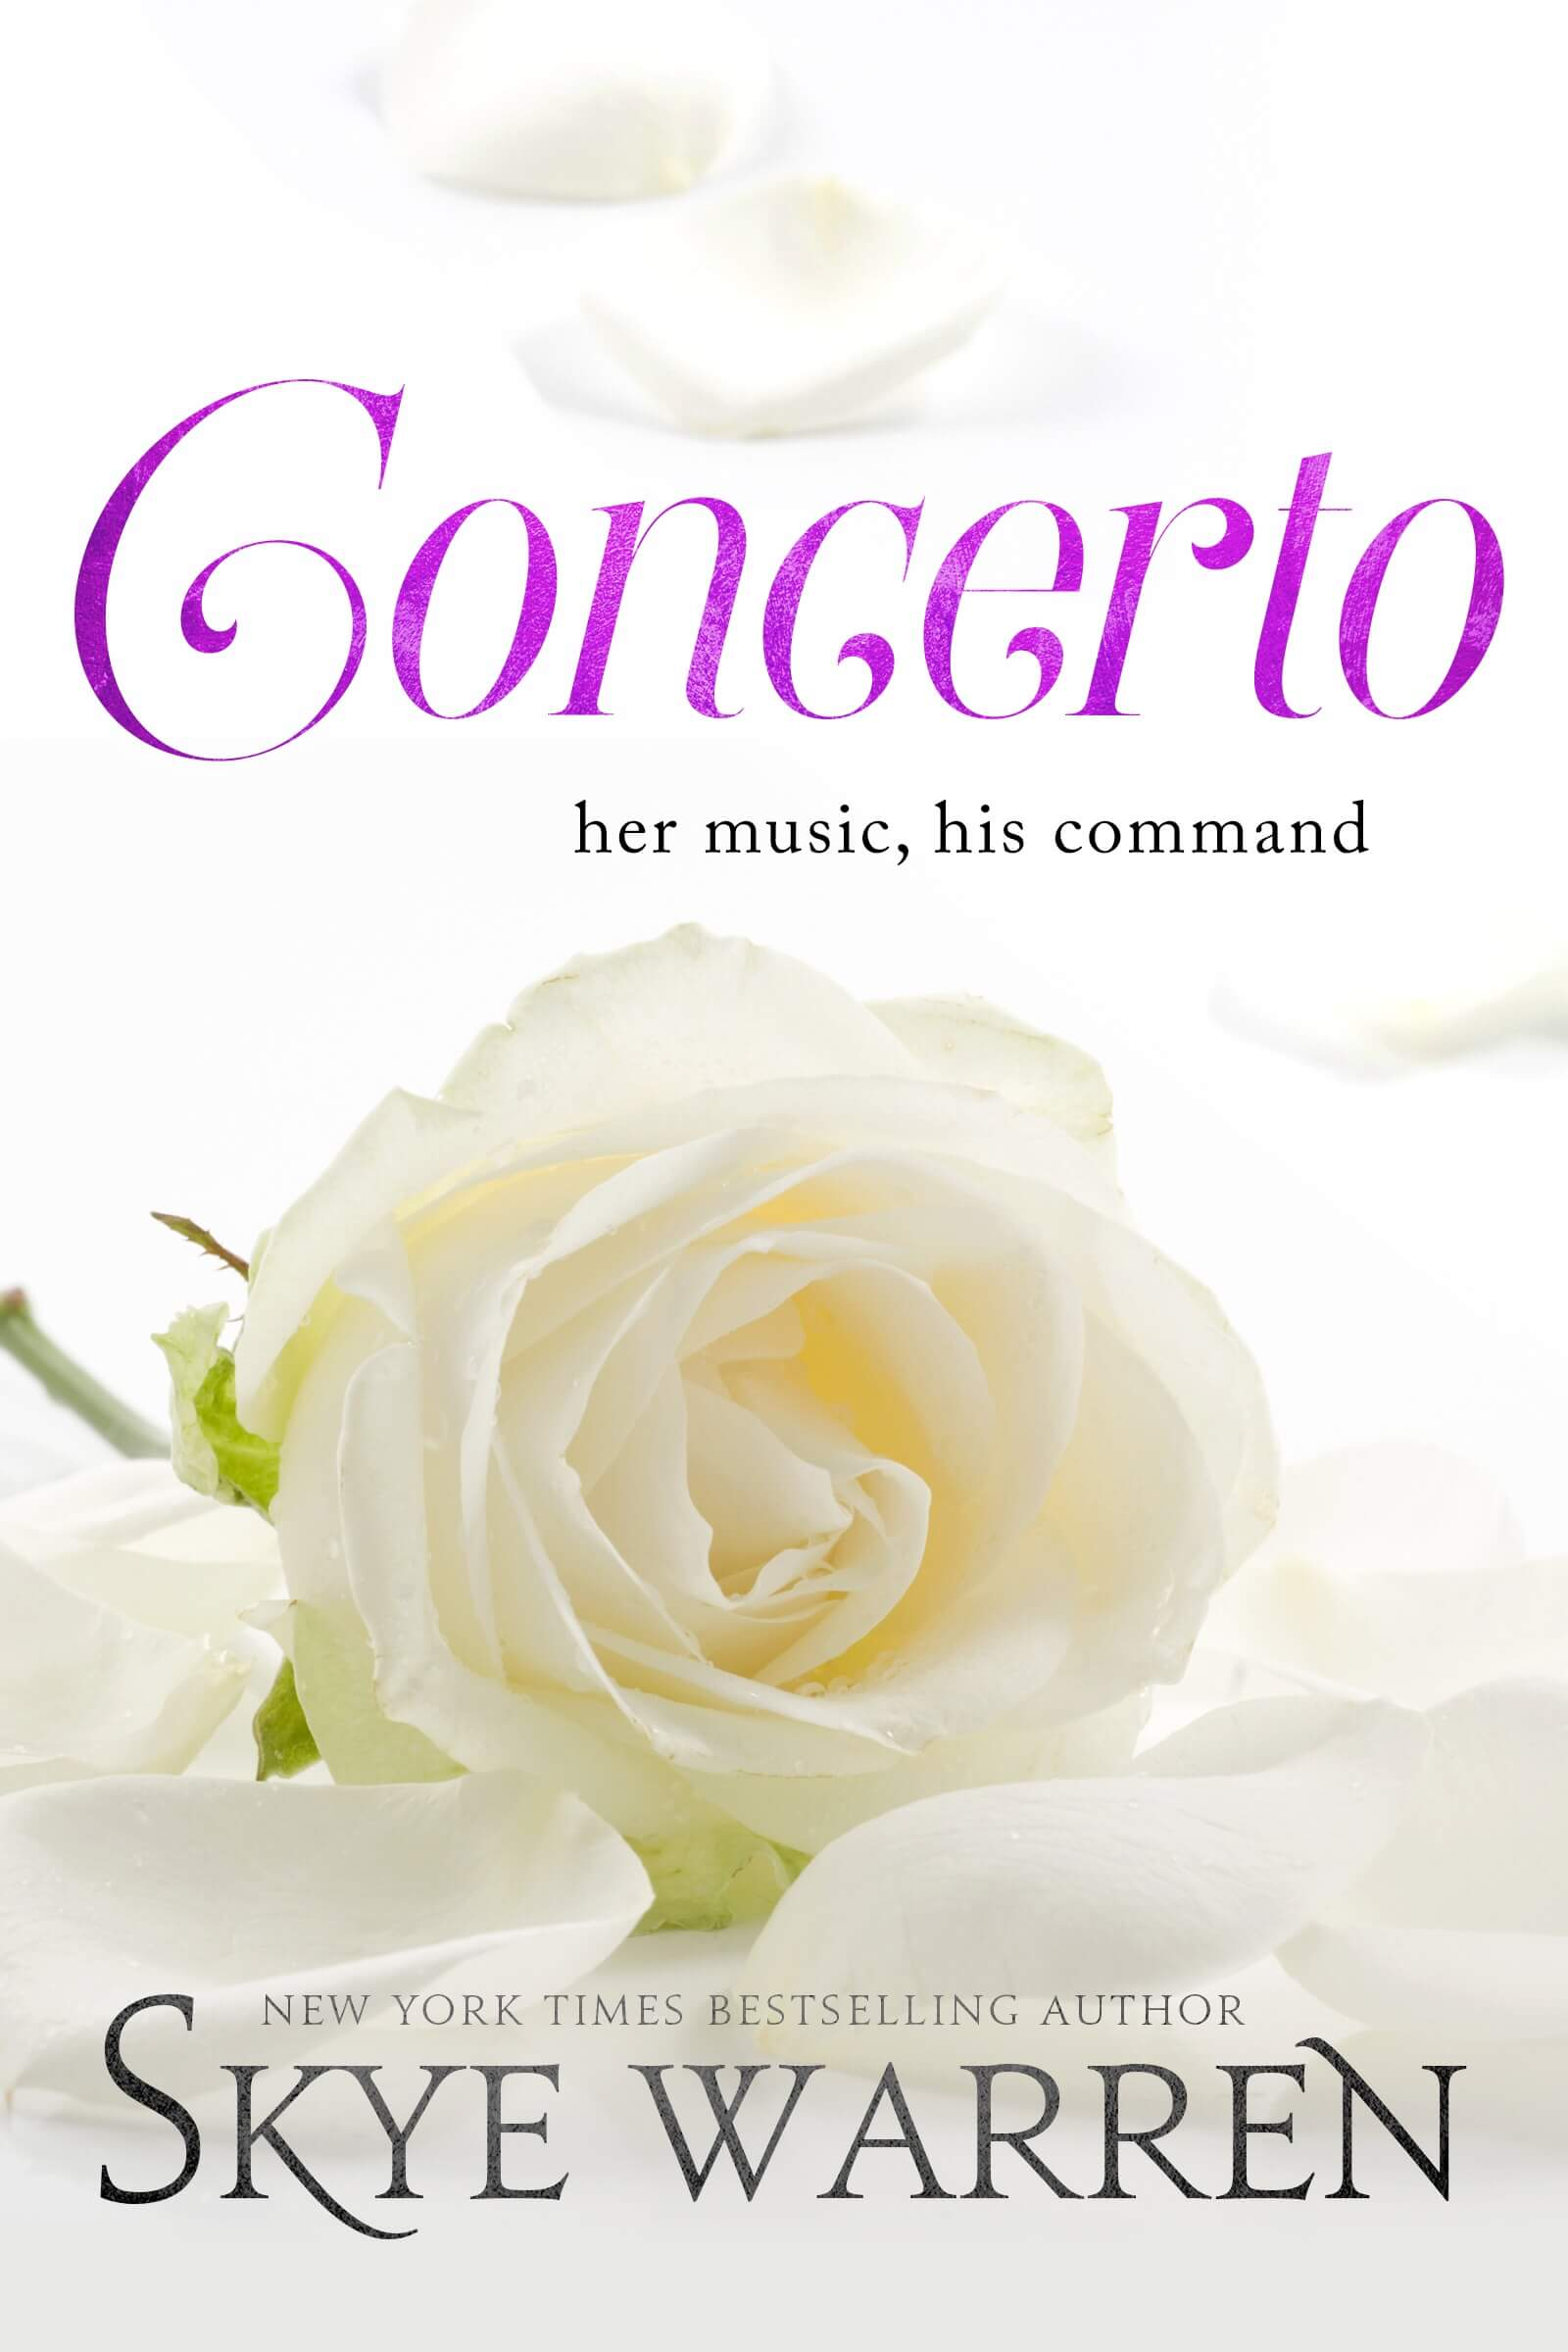 Cover Reveal * Concerto (North Security, book 2) by Skye Warren * Coming May 14th * Pre Order Now